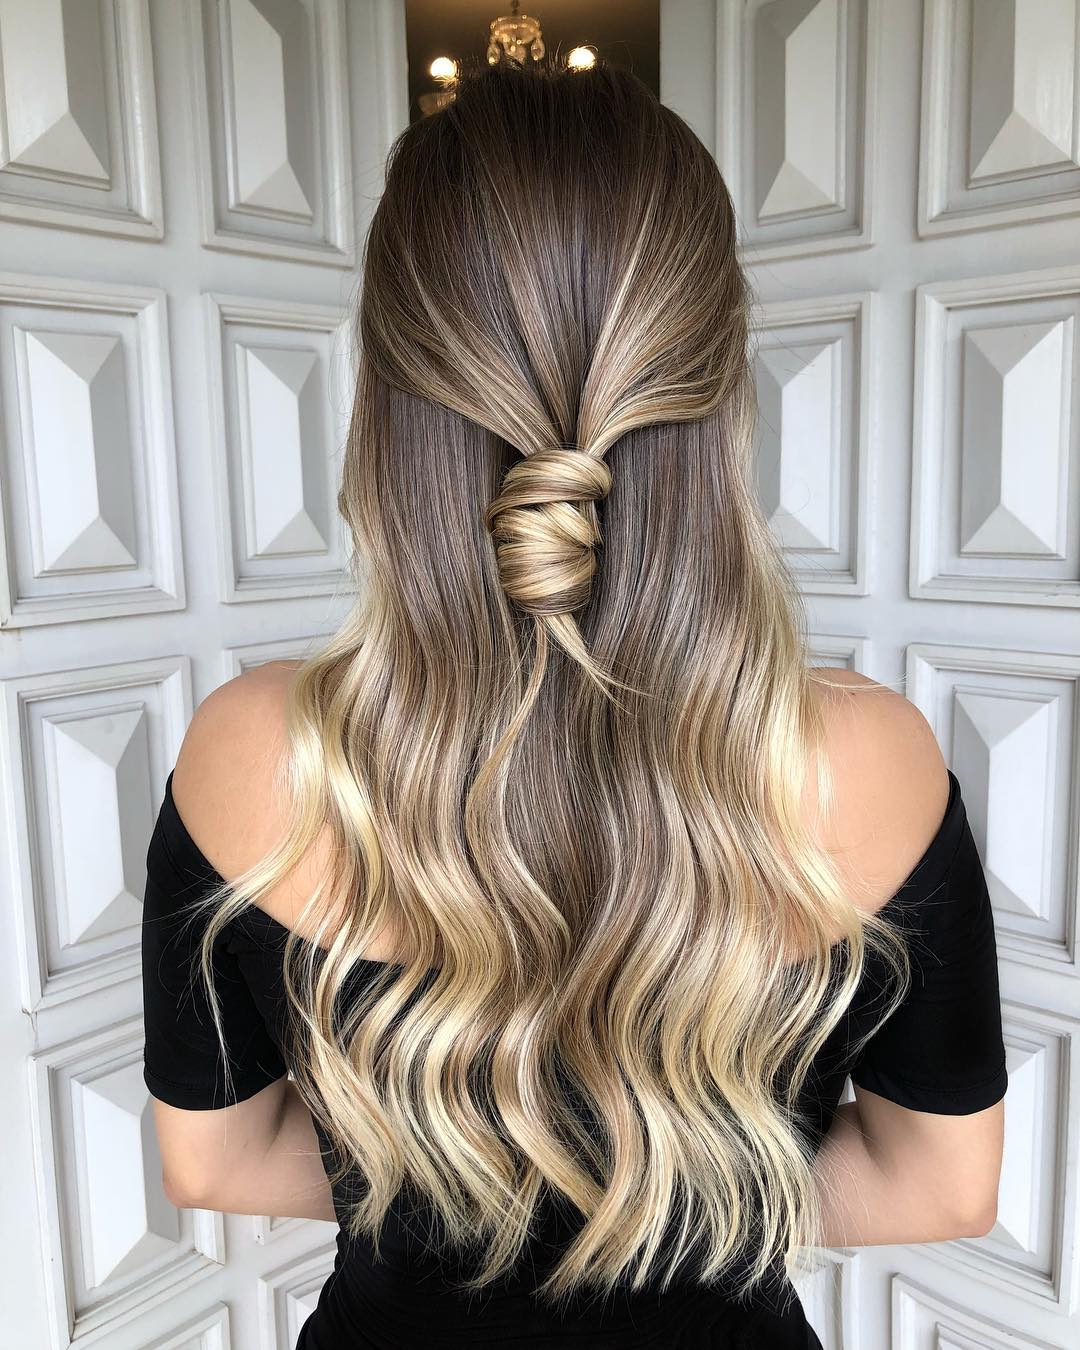 Platinum Blonde Hair Color Ideas For 2018 2019: 50 Hottest Ombre Hair Color Ideas For 2019